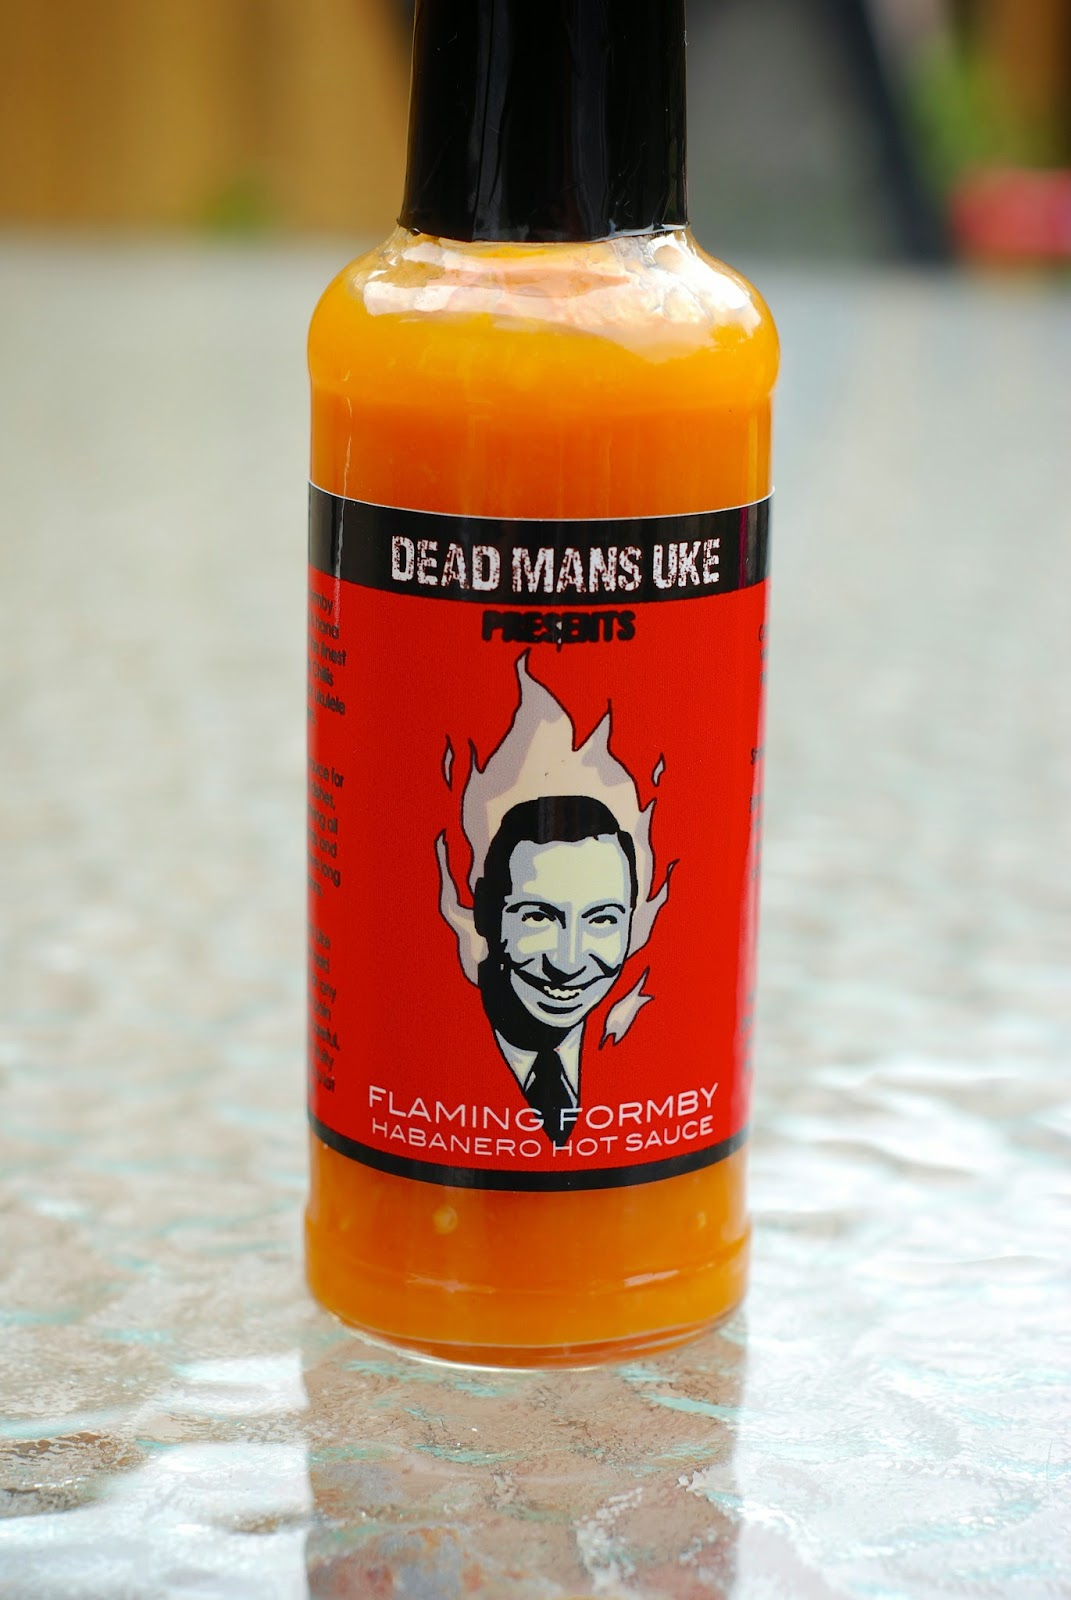 Flaming Formby Hot Sauce